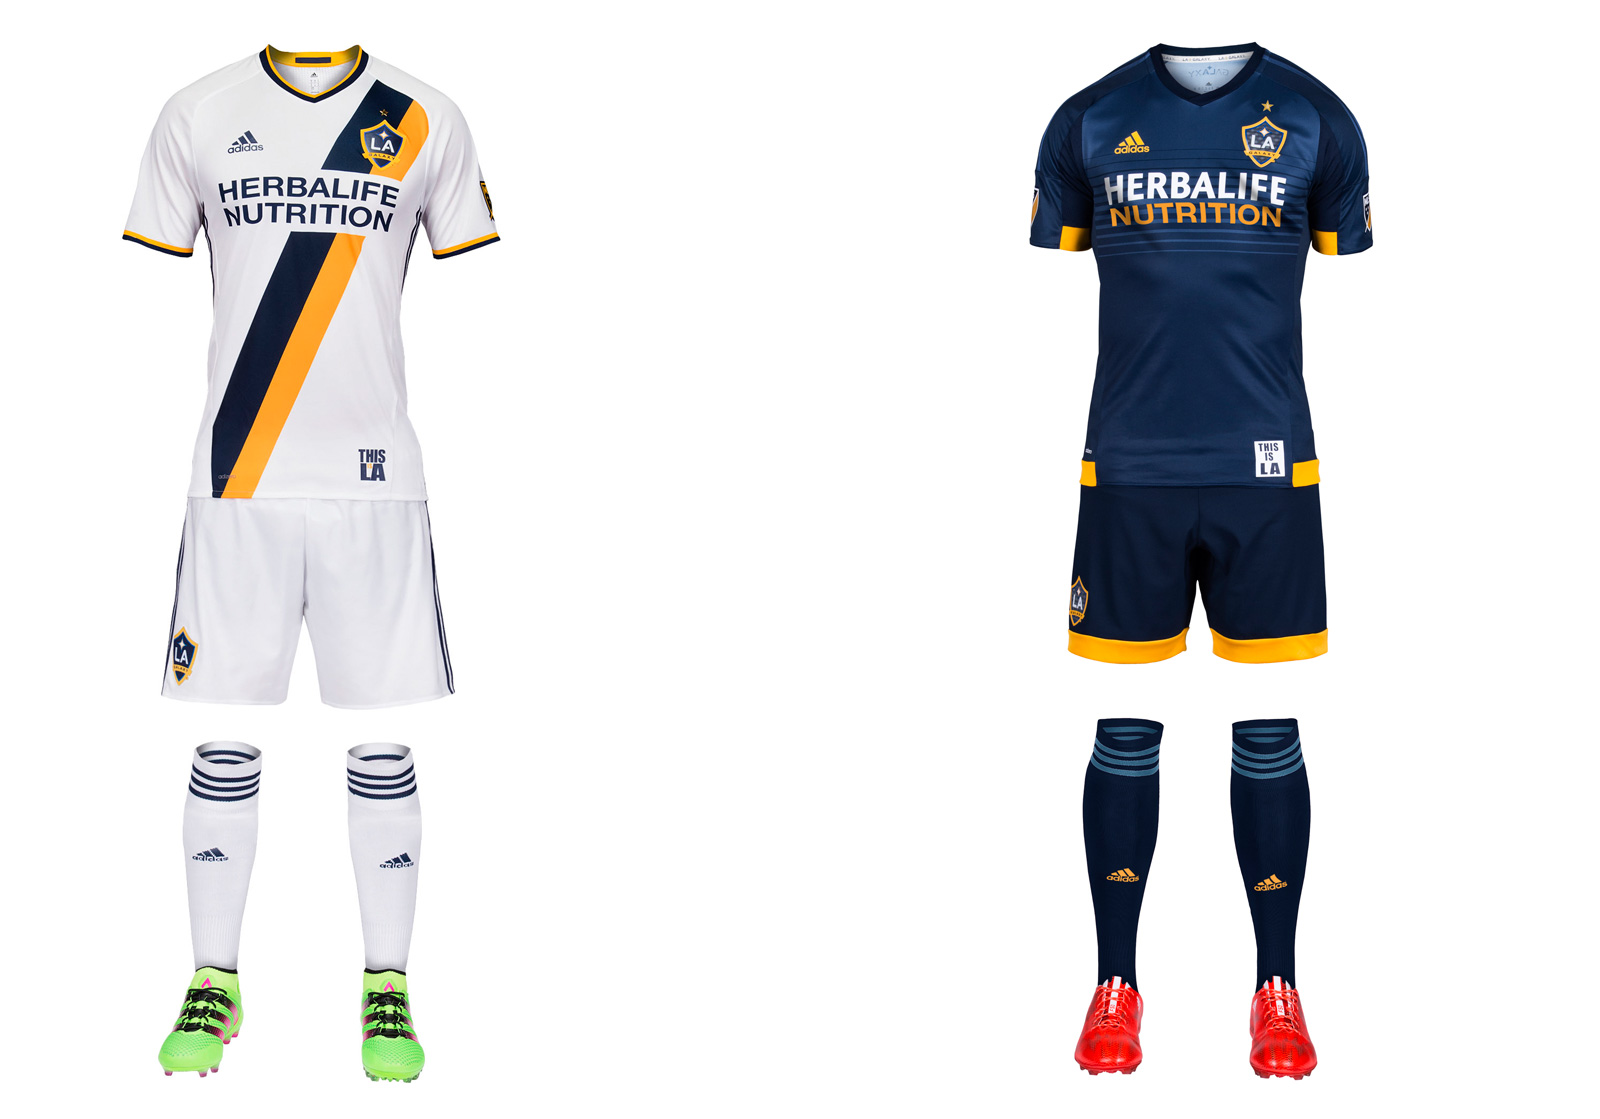 LA Galaxy's 2016 uniform